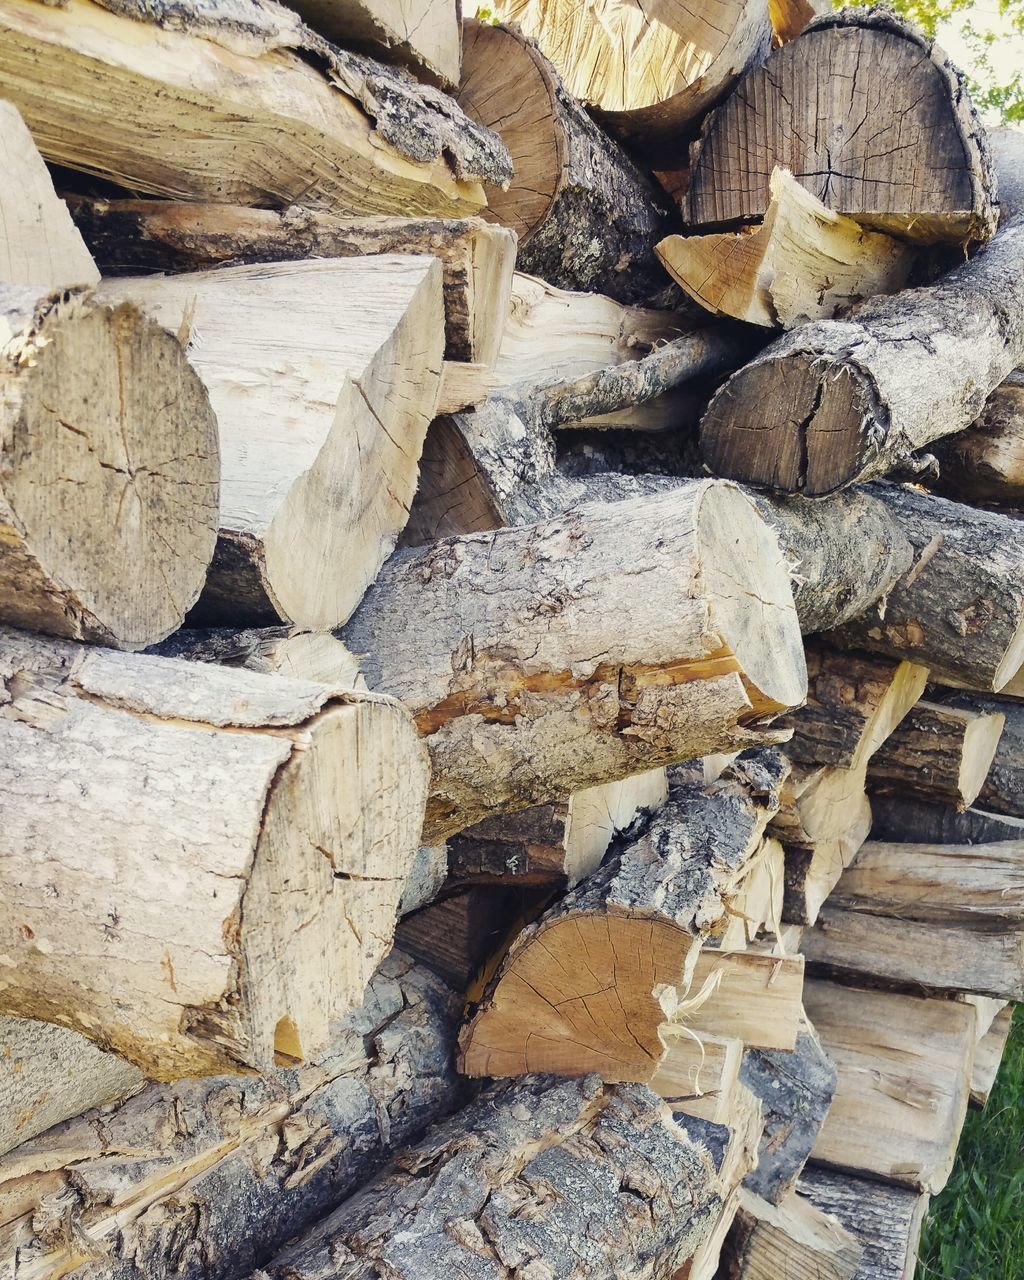 log, timber, stack, woodpile, forestry industry, heap, lumber industry, wood - material, deforestation, fossil fuel, abundance, large group of objects, day, no people, fuel and power generation, textured, outdoors, close-up